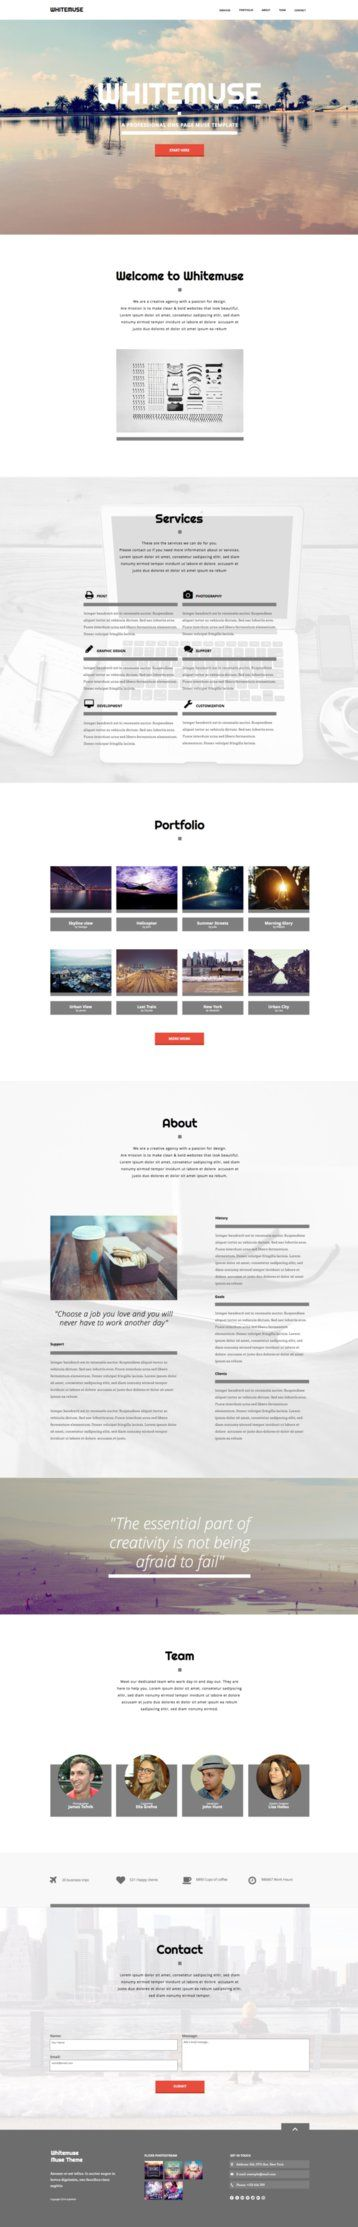 34 best adobe muse templates images on pinterest adobe muse whitemuse one page muse theme by stylewish adobe muse template on themeforest pronofoot35fo Image collections